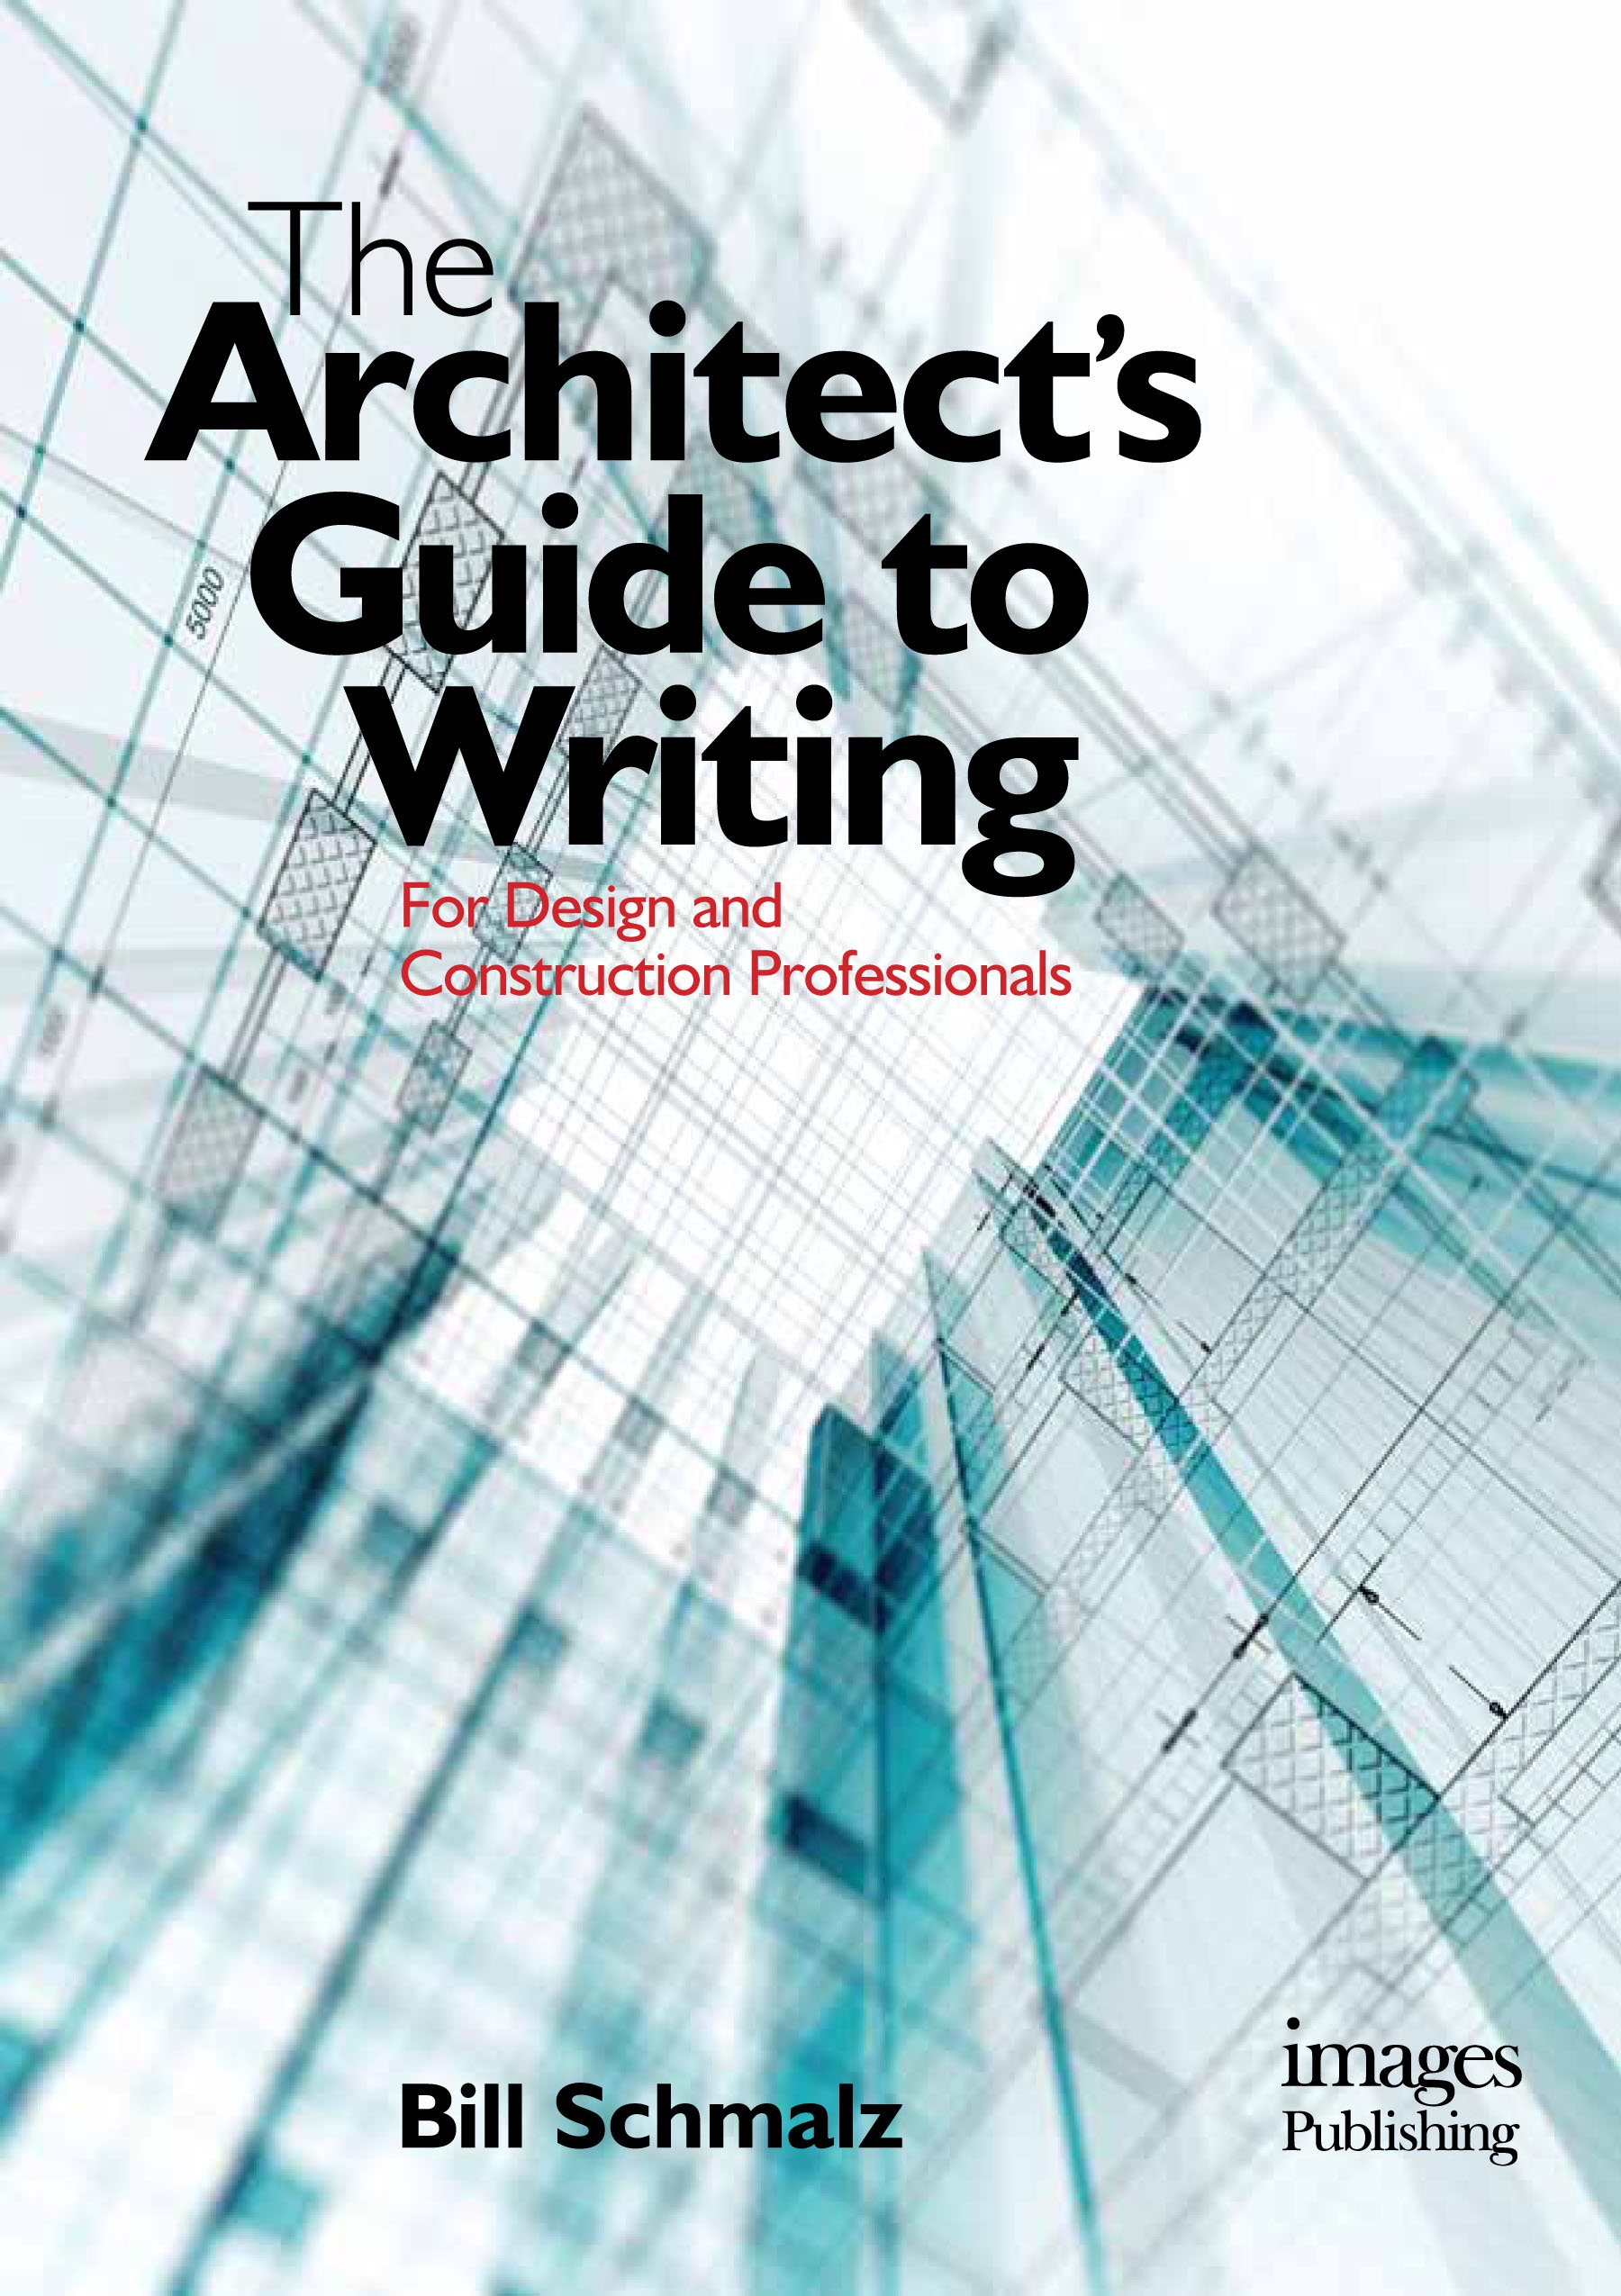 The Architect's Guide to Writing: For Design and Construction Professionals by Images Publishing Dist Ac